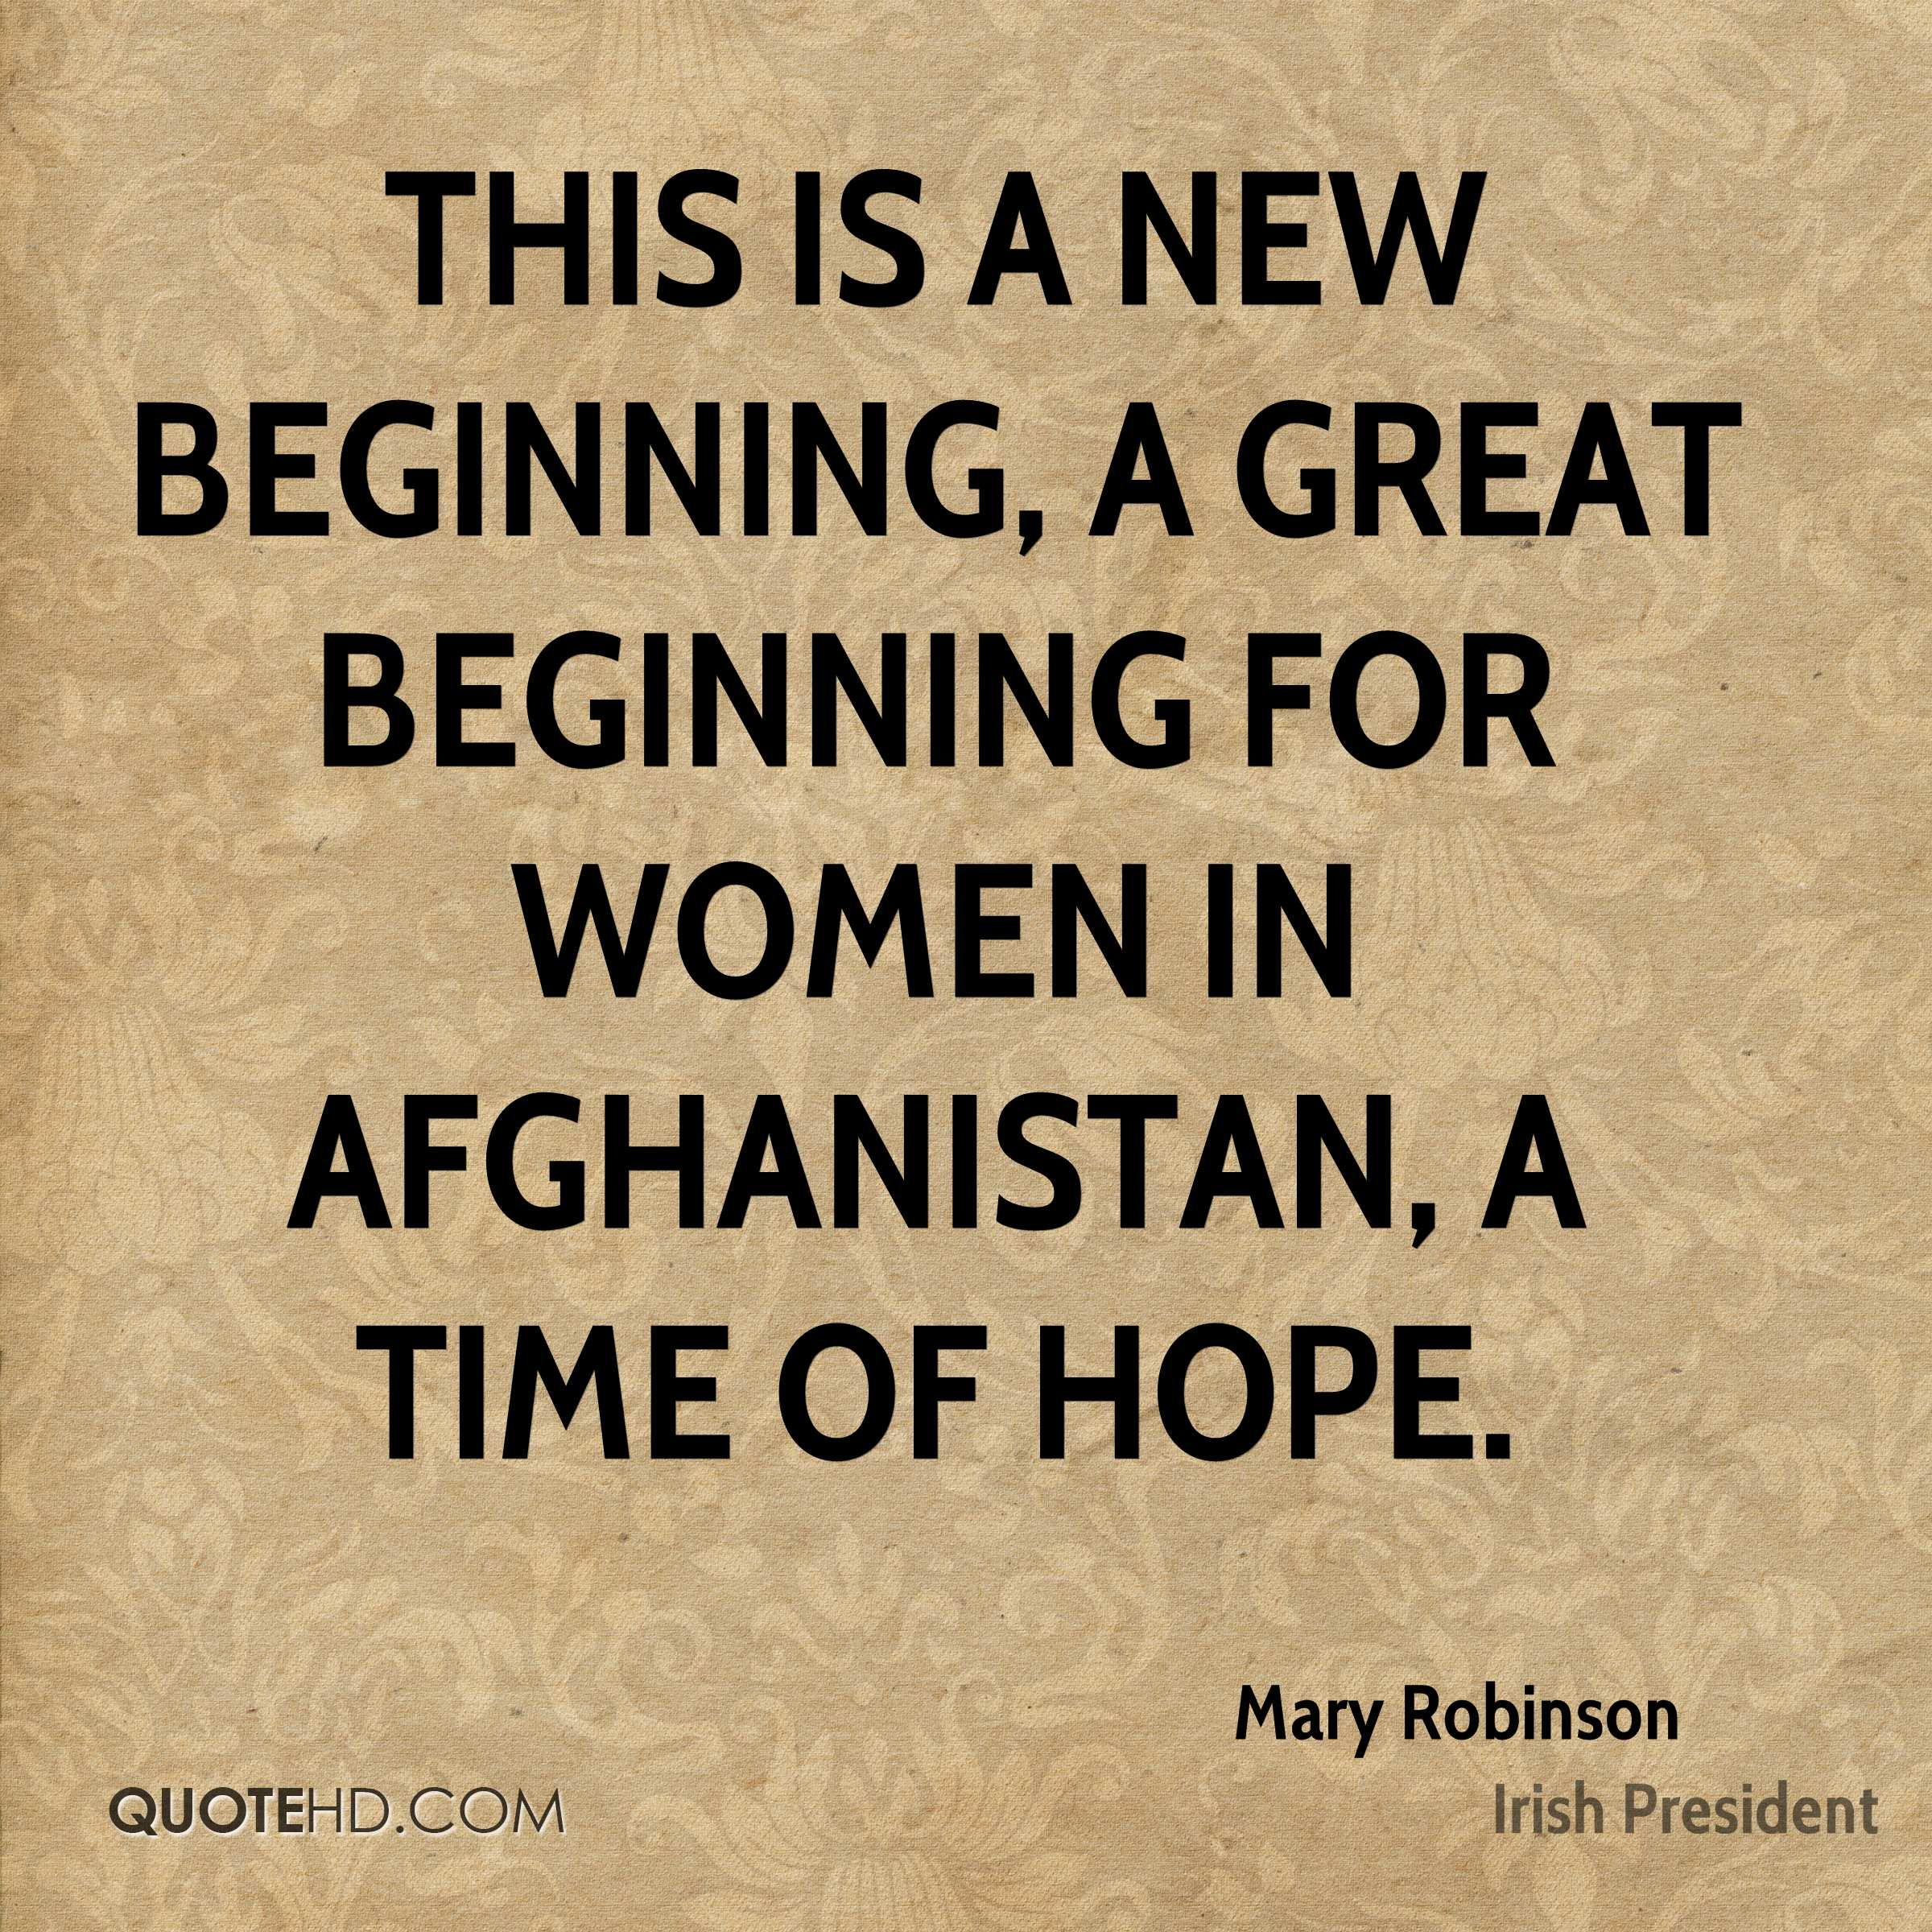 This is a new beginning, a great beginning for women in Afghanistan, a time of hope.